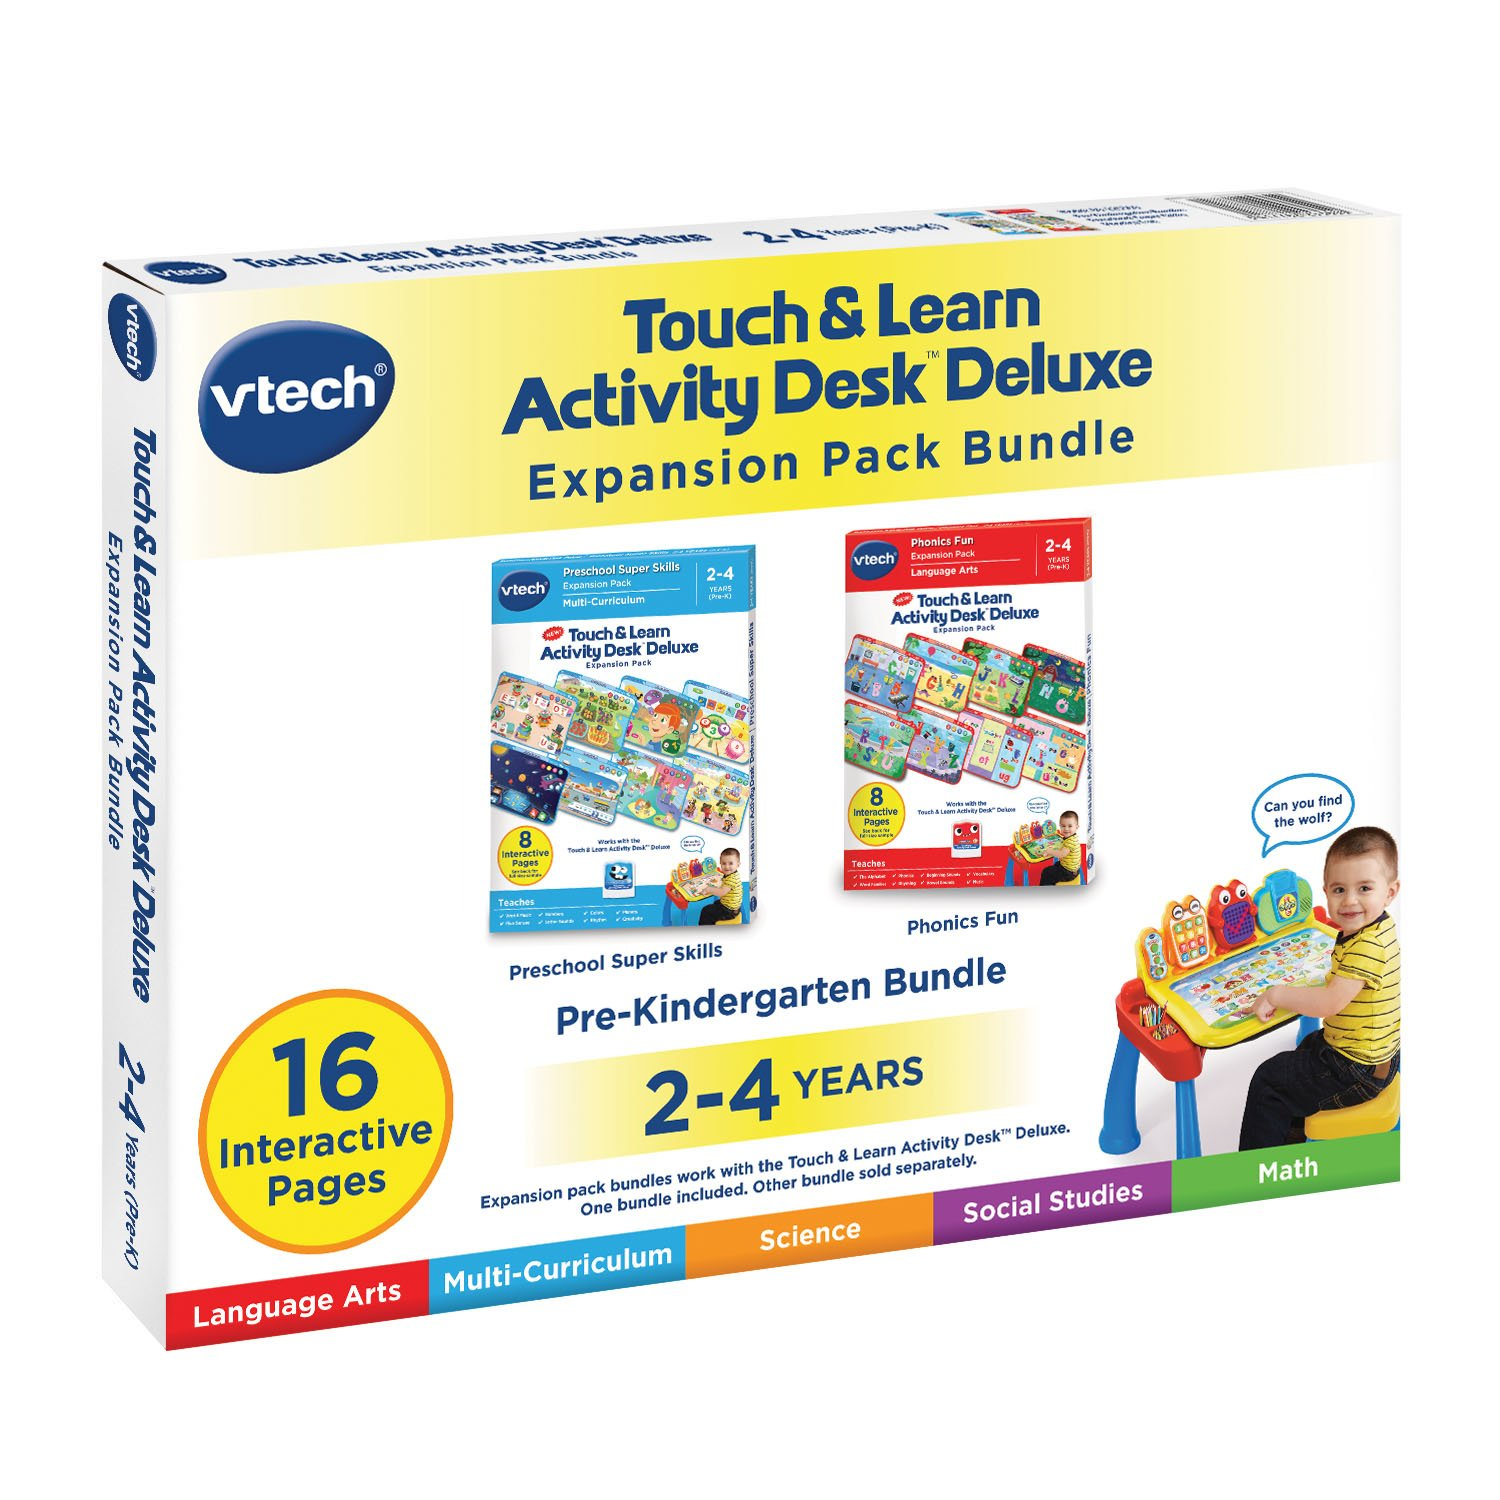 VTech Touch & Learn Activity Desk Deluxe 2-in-1 Preschool Bundle Expansion Pack for Age 2-4 by VTech (Image #6)